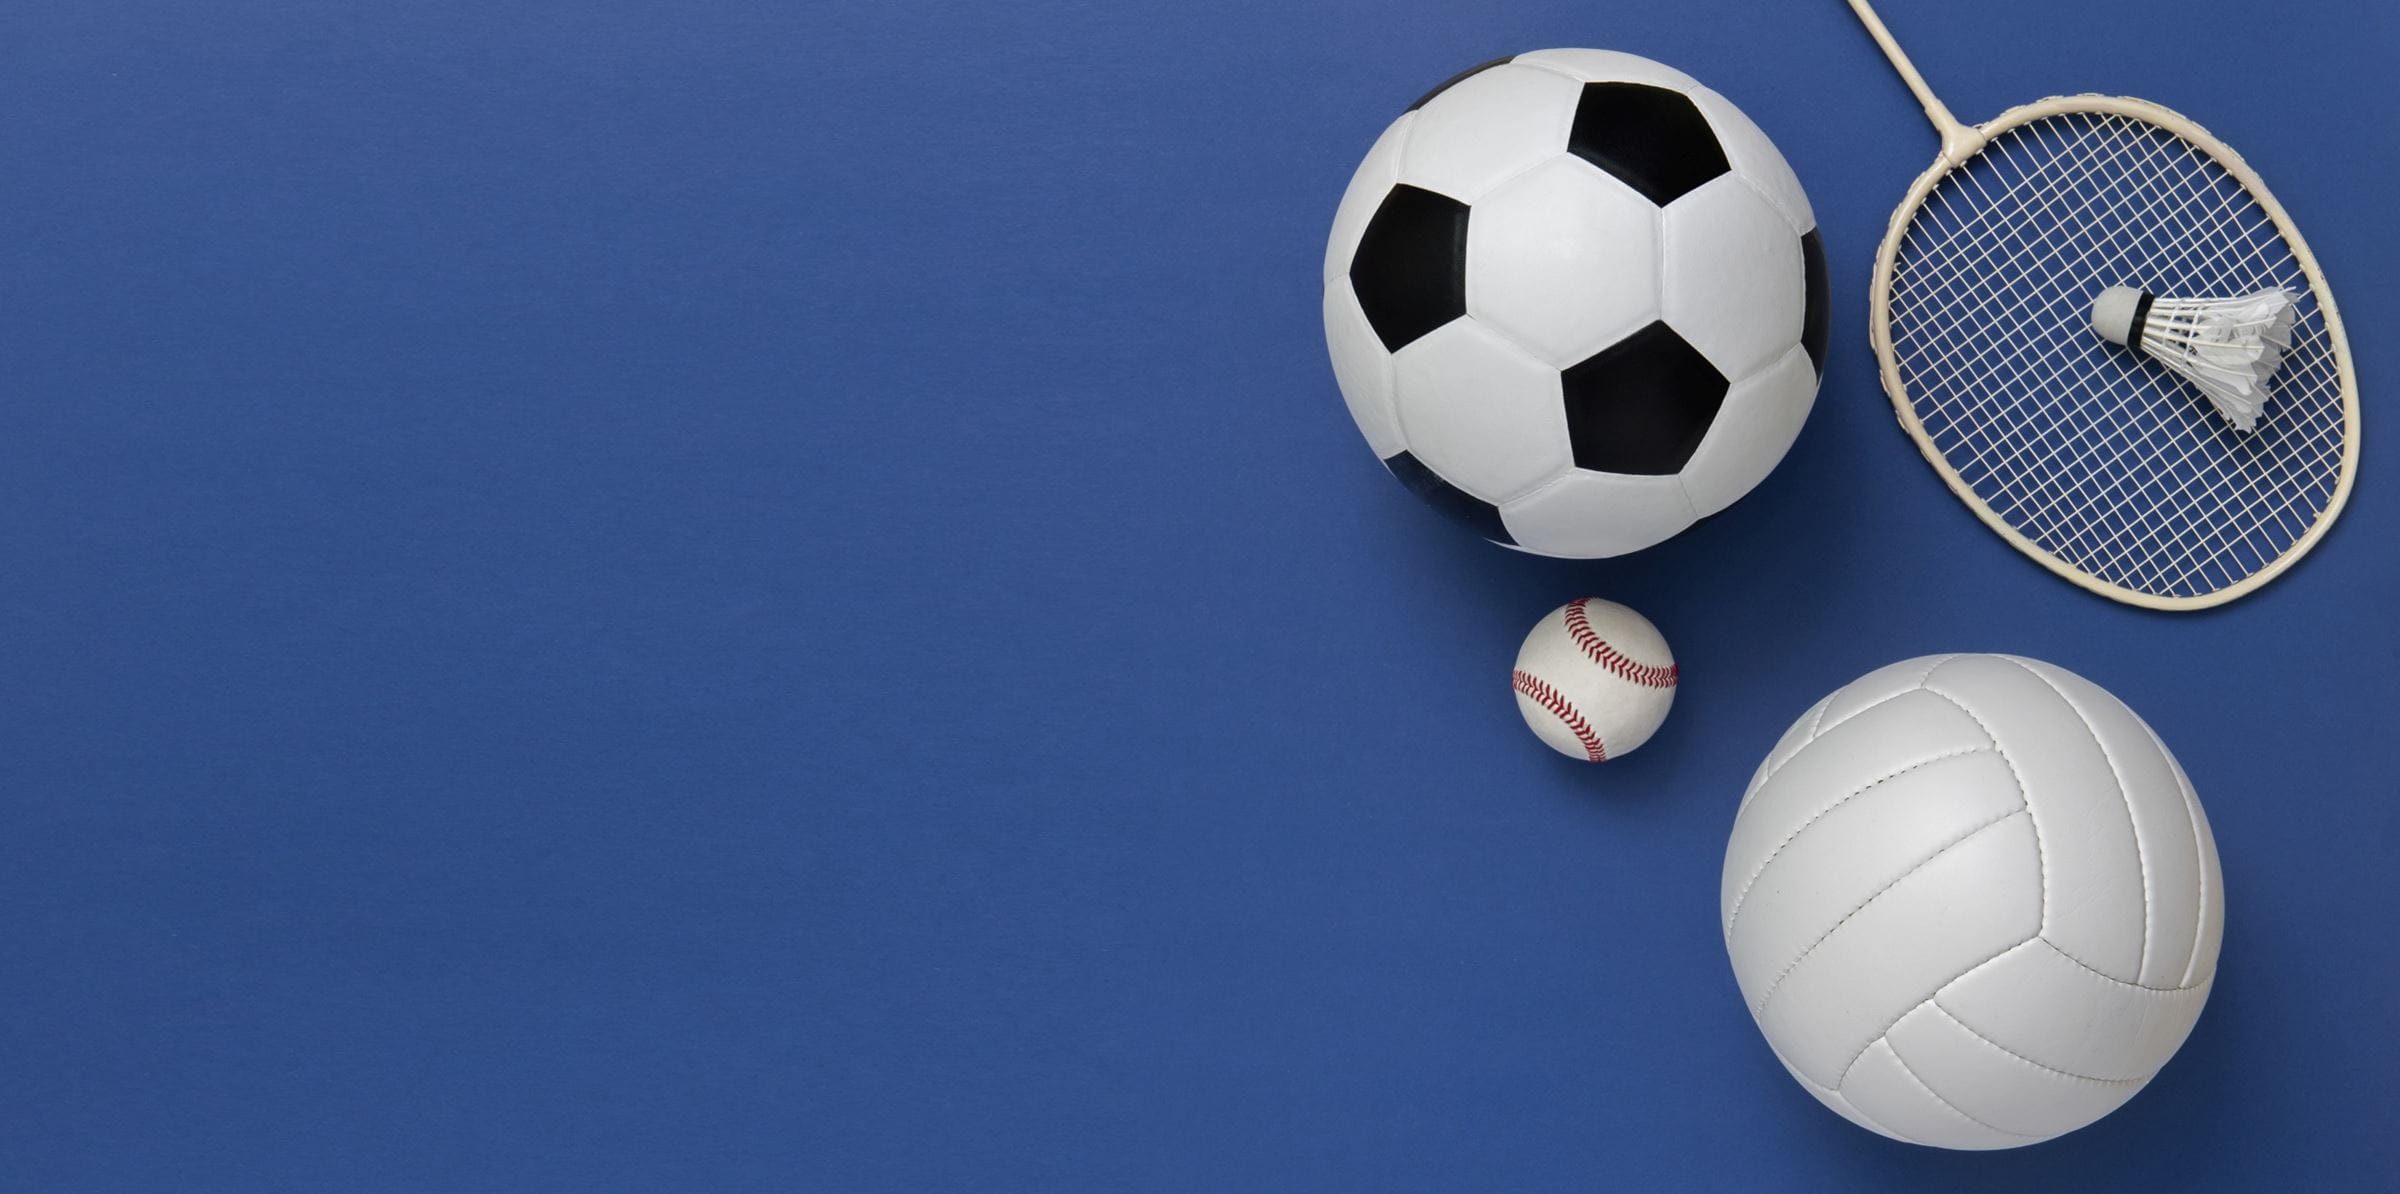 Assorted sports equipment including a basketball, soccer ball, volleyball, baseball, badminton racket on a blue background ((c) Augustas Cetkauskas – stock.adobe.com)